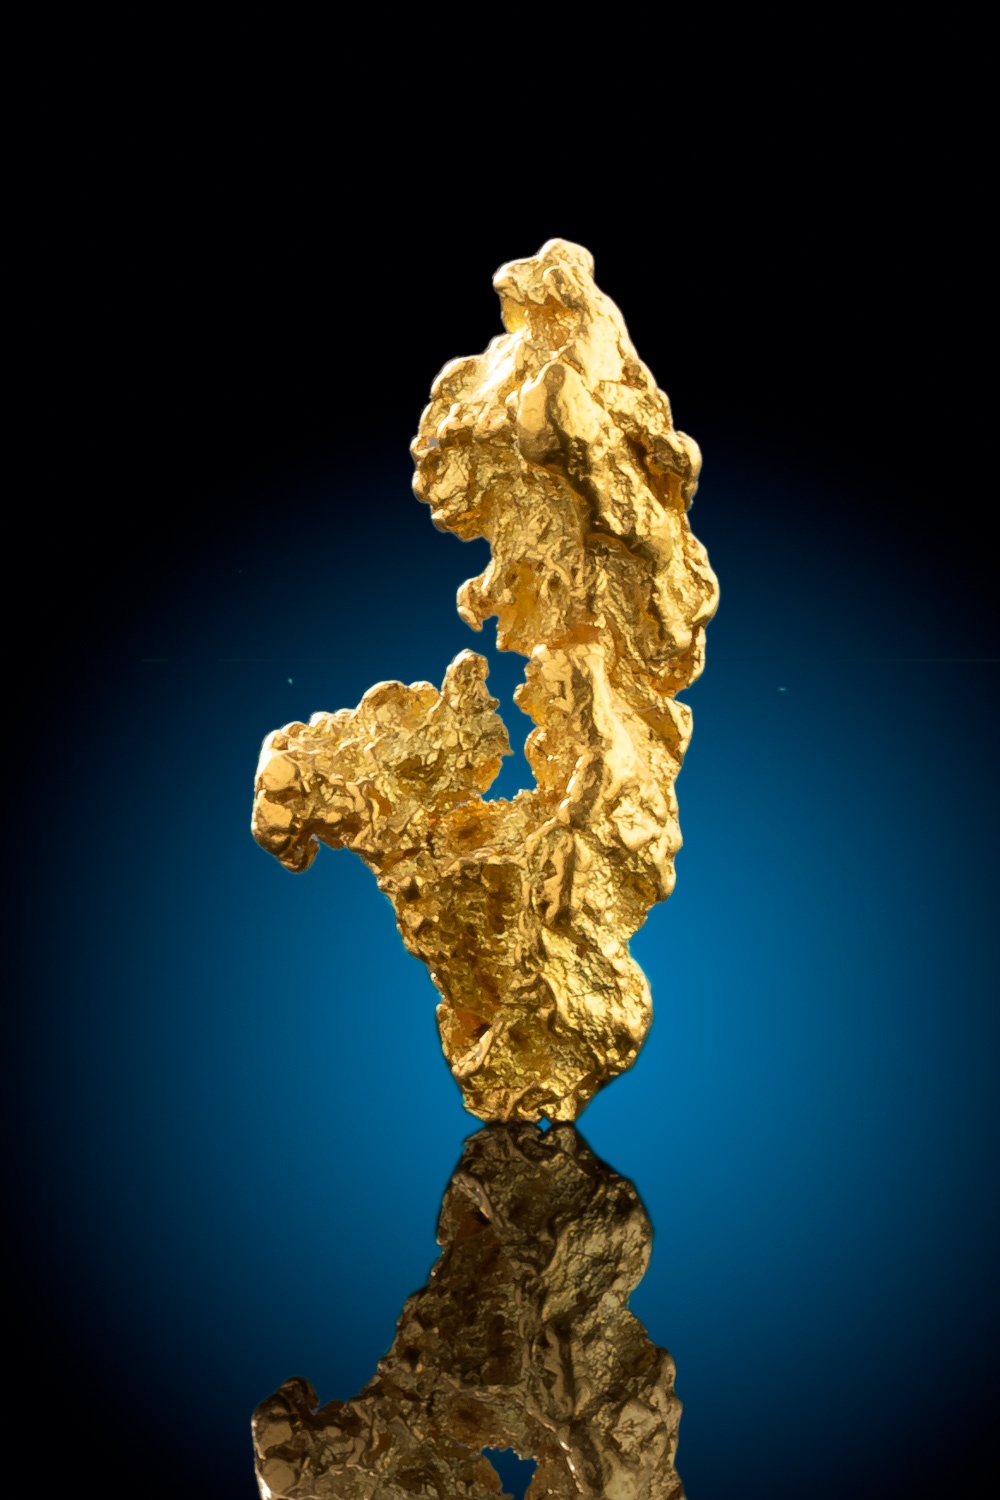 Unique Crusty Natural Gold Nugget from Alaska